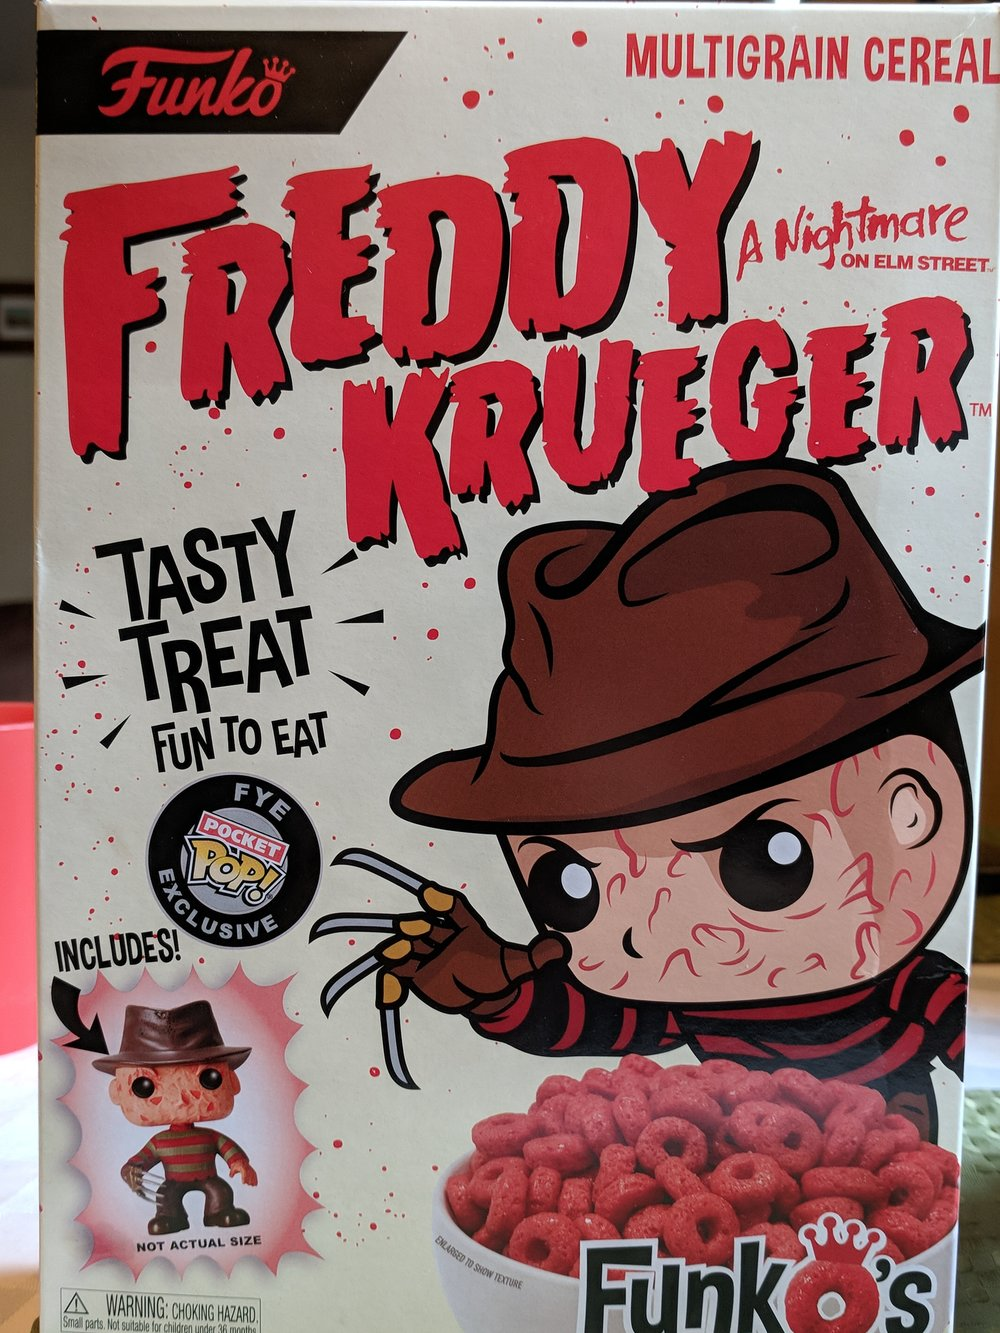 Freddy's looking at the cereal as if it's a bowl full of souls and I love it